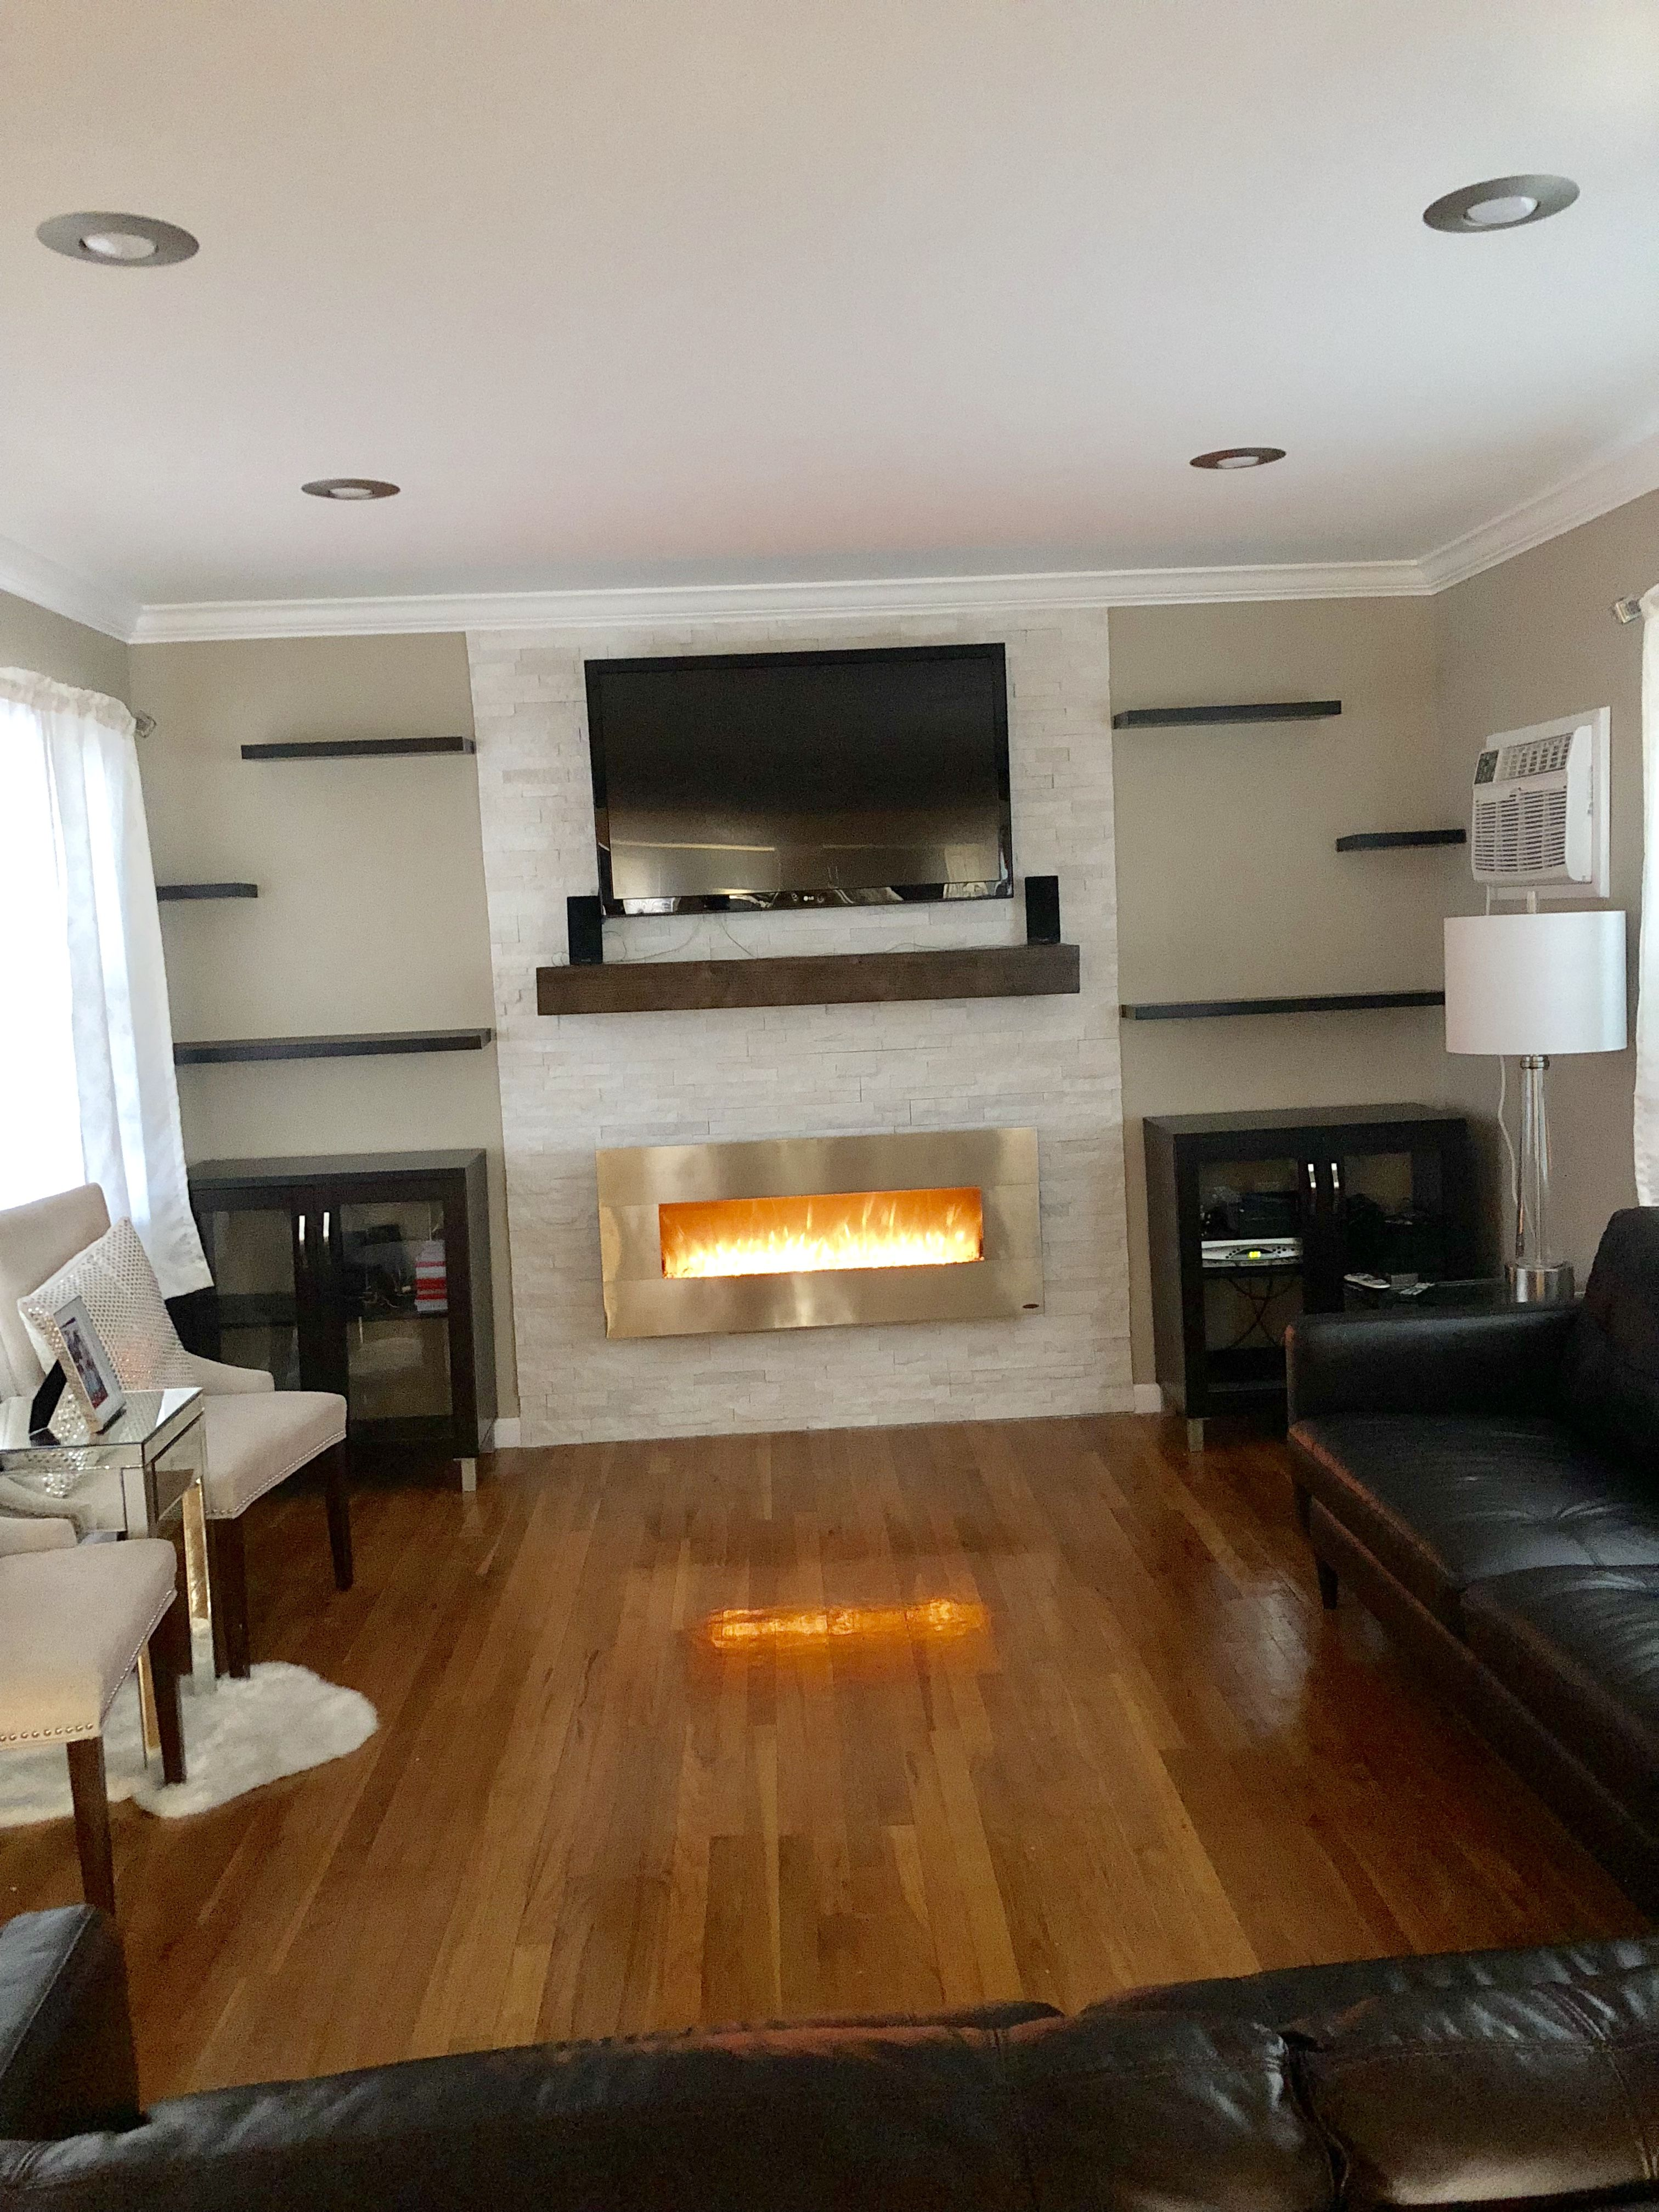 My living room Reno is complete! (With images) | Decor ...